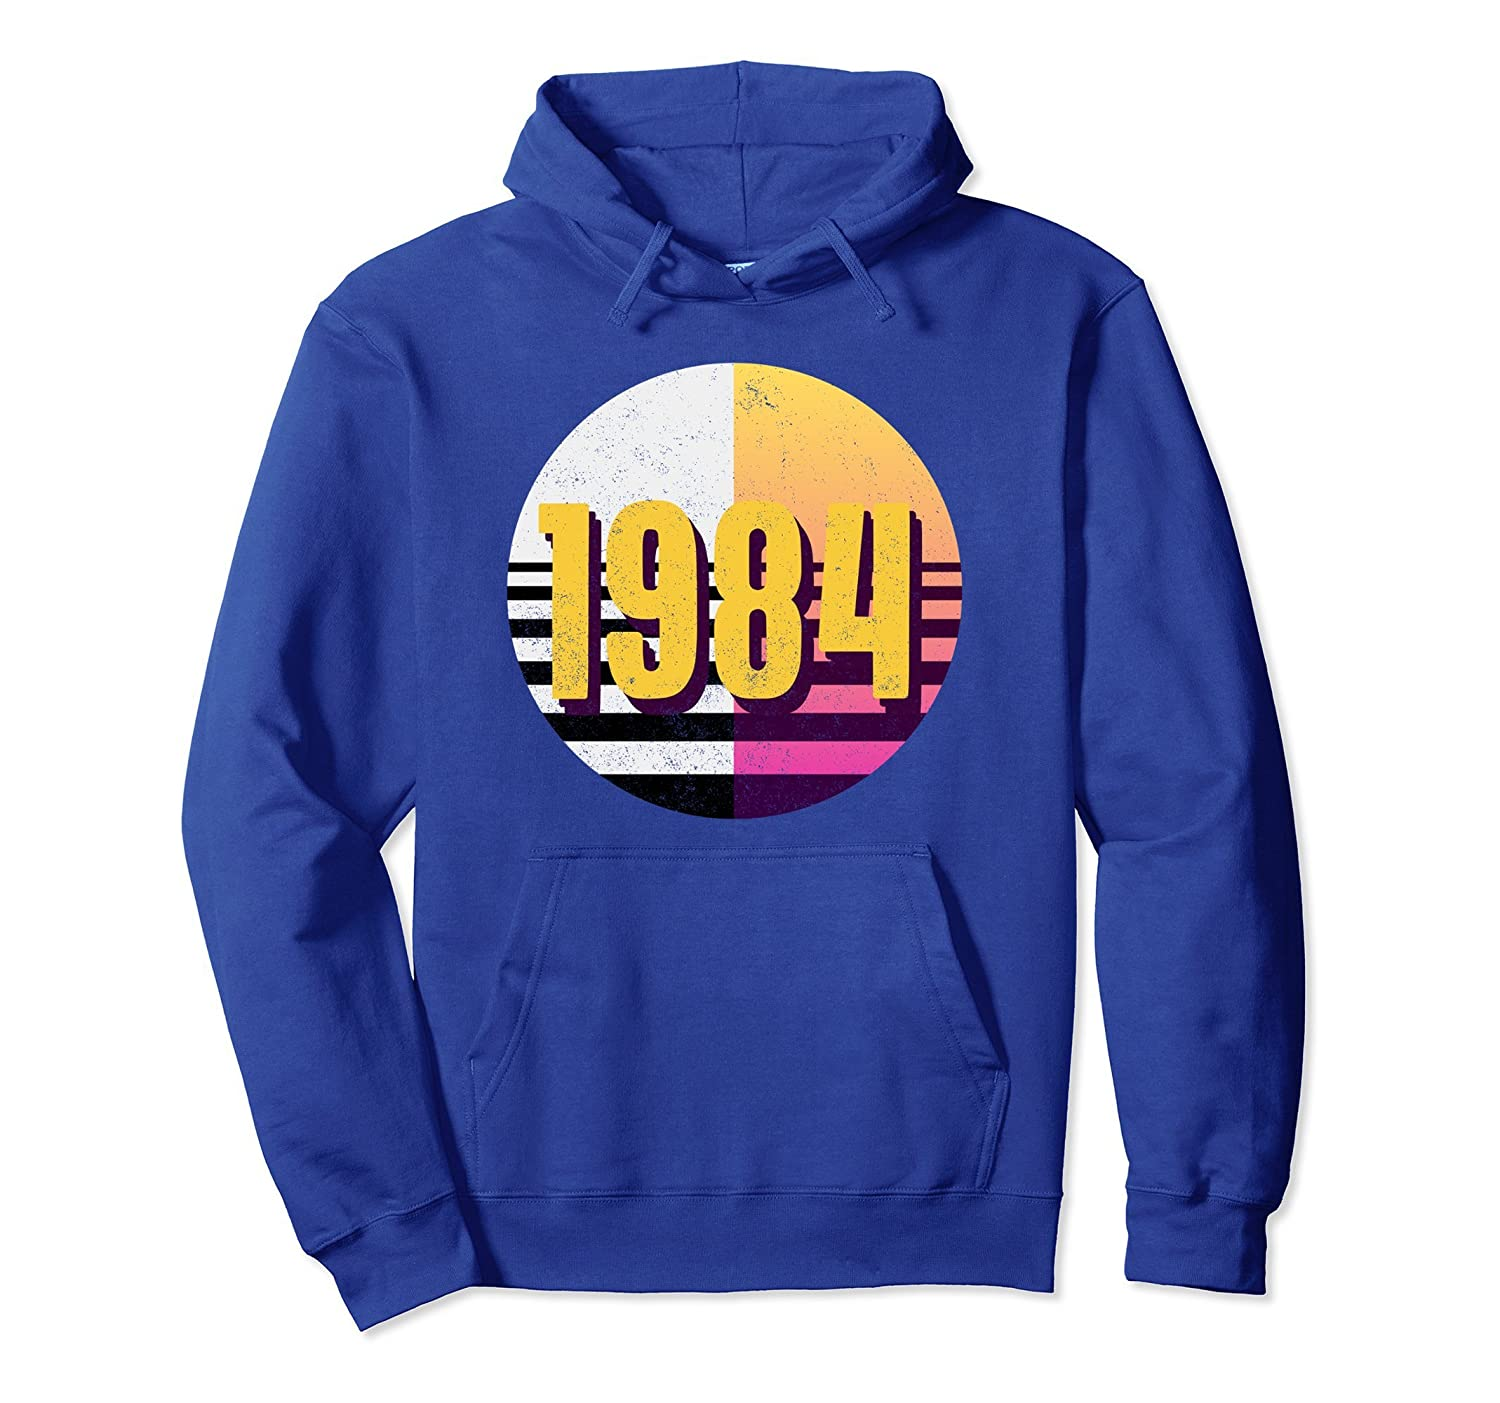 1980s Retro 80s Style Vintage 1984 Hoodie-ah my shirt one gift